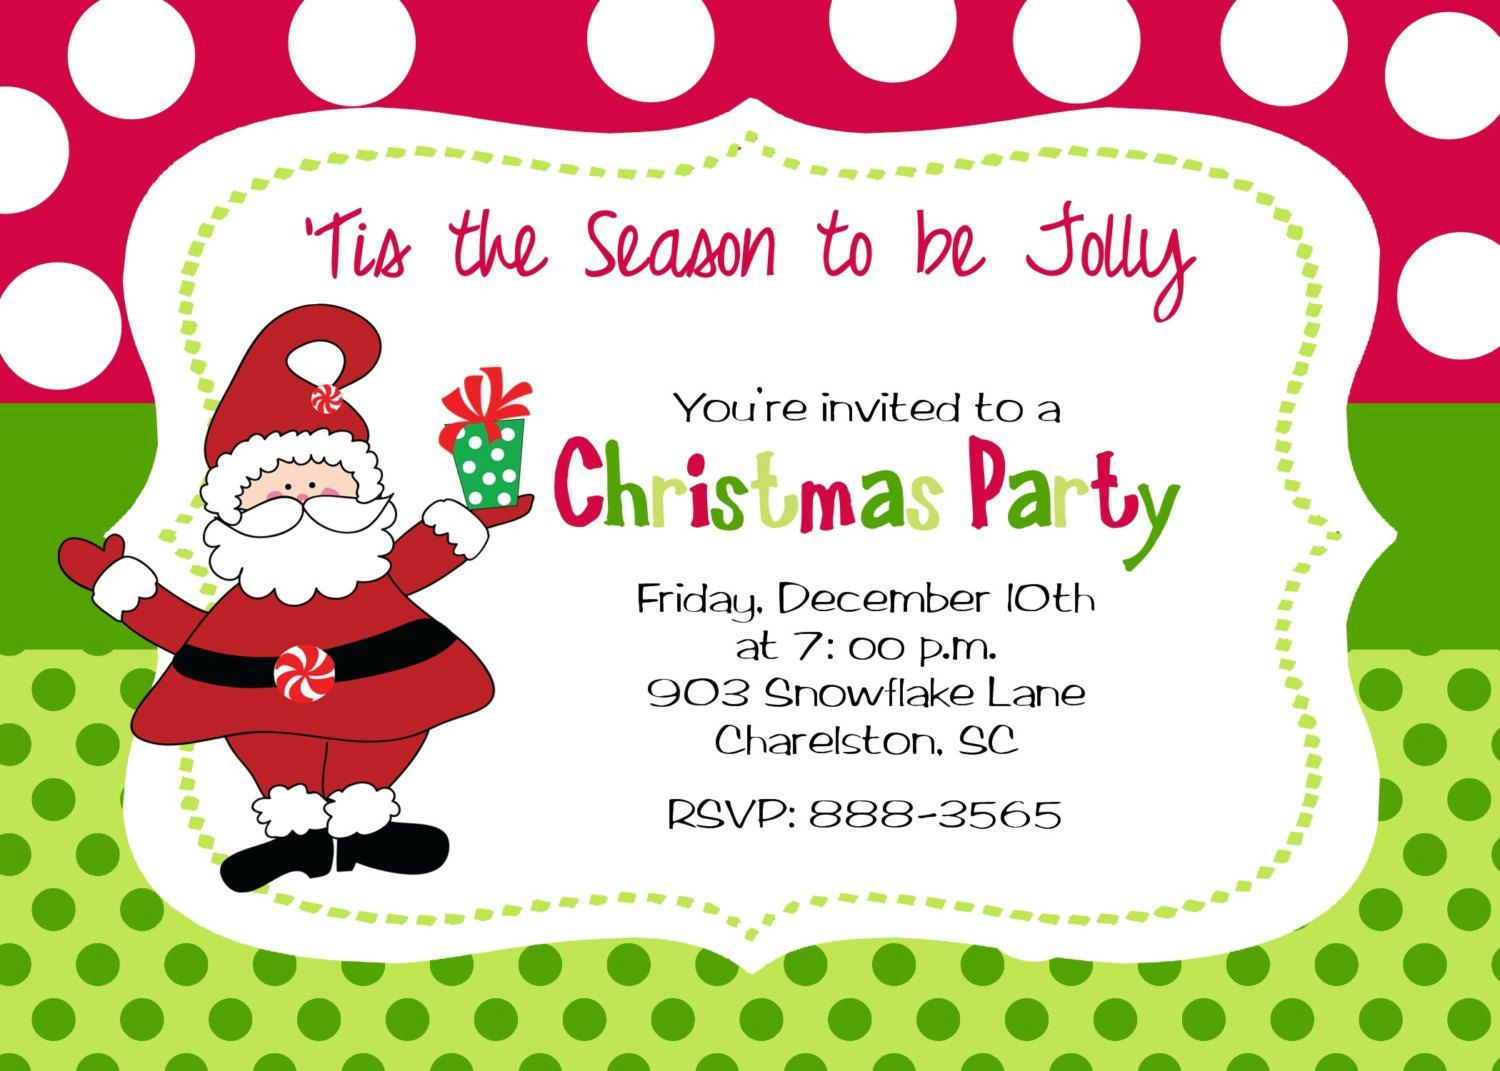 Christmas Party Invitation By Stickerchic On Etsy – Christmas Party Invites Ideas